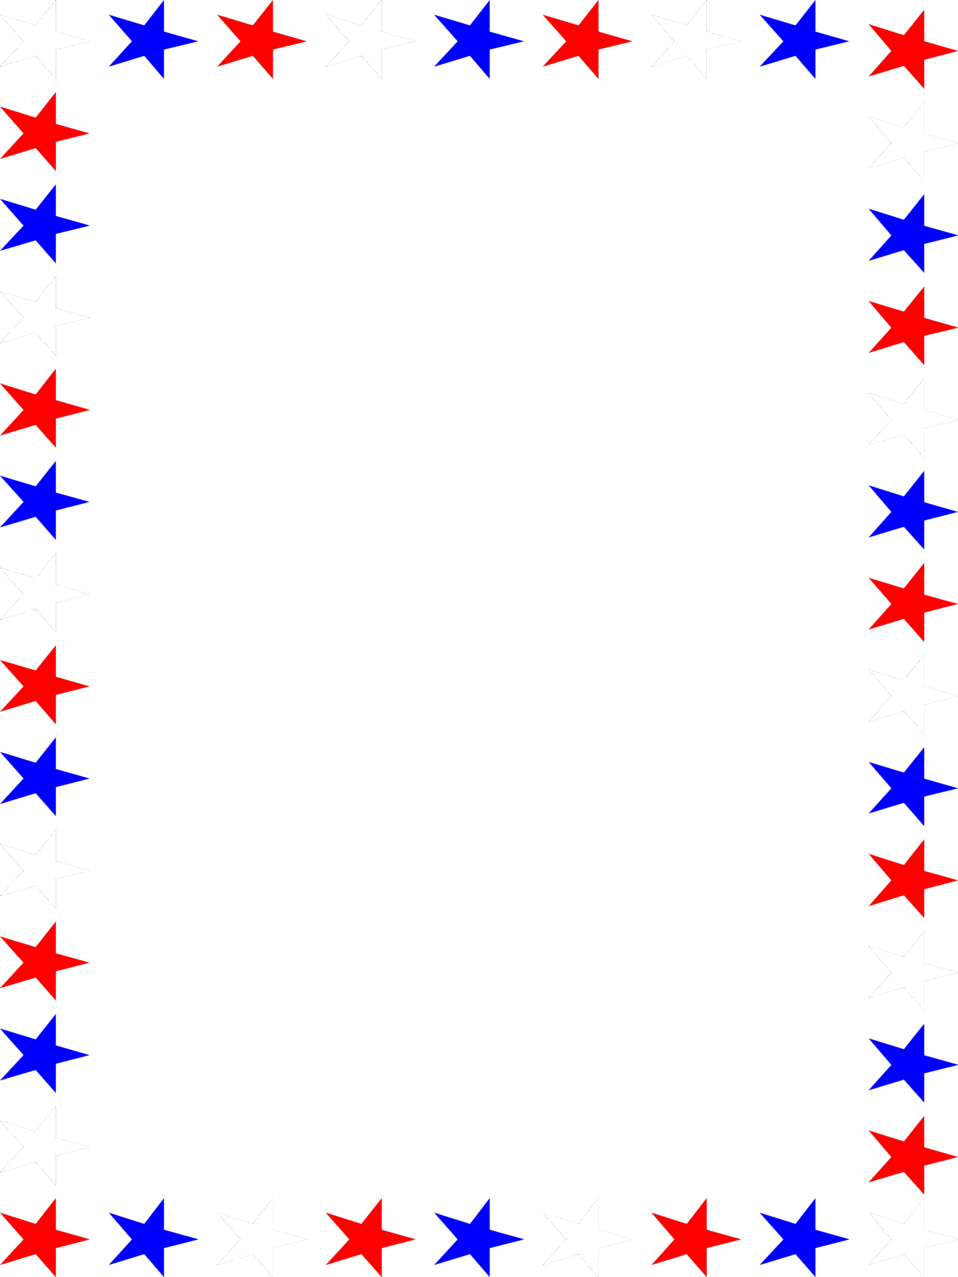 4371 Illustration Of A Blank Frame Border Of Red White And Blue Stars Pv Png 958 1277 Red Pages Clip Art Borders Clip Art